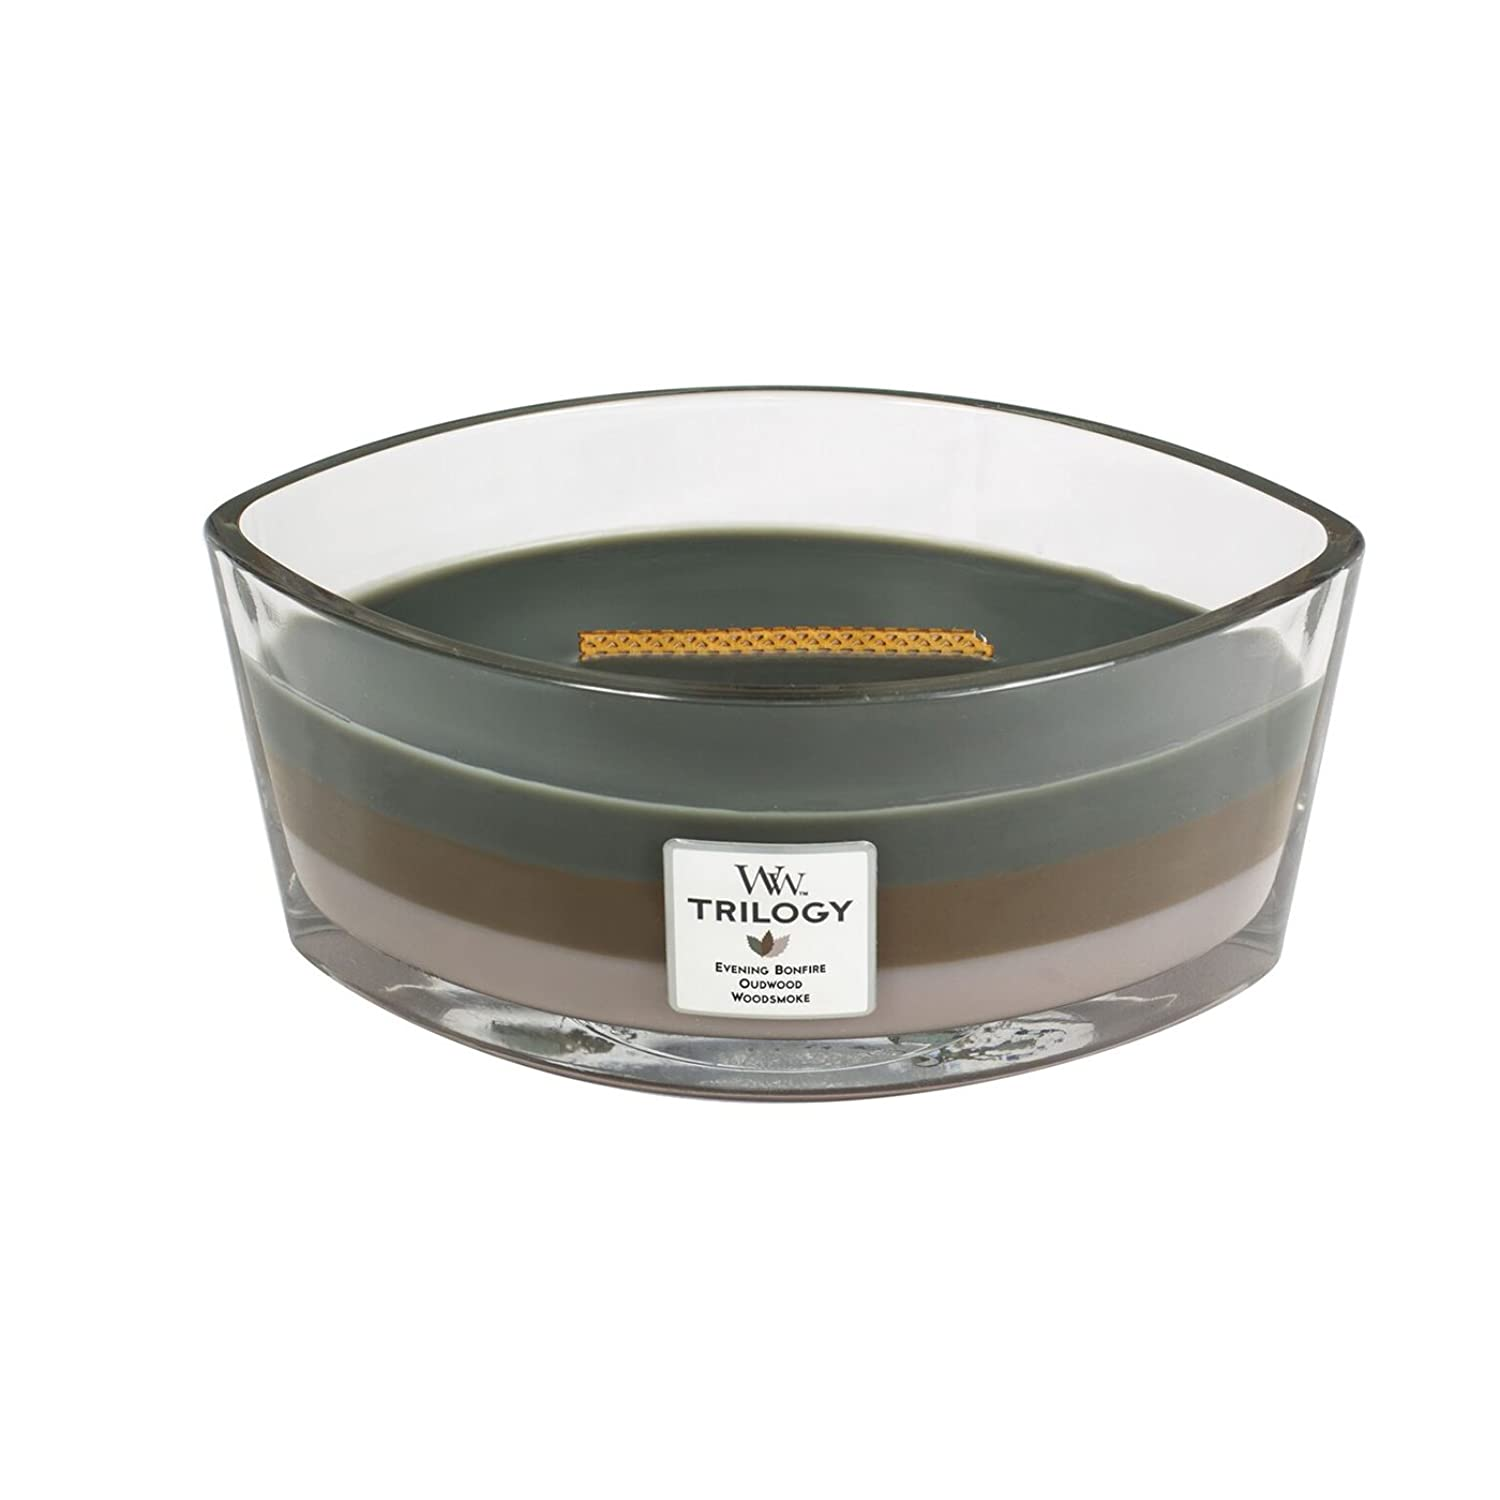 WoodWick Trilogy cosy CABIN, 3-in-1 Highly Scented Candle, Ellipse Glass Jar with Original HearthWick Flame, Large 7-inch, 470ml